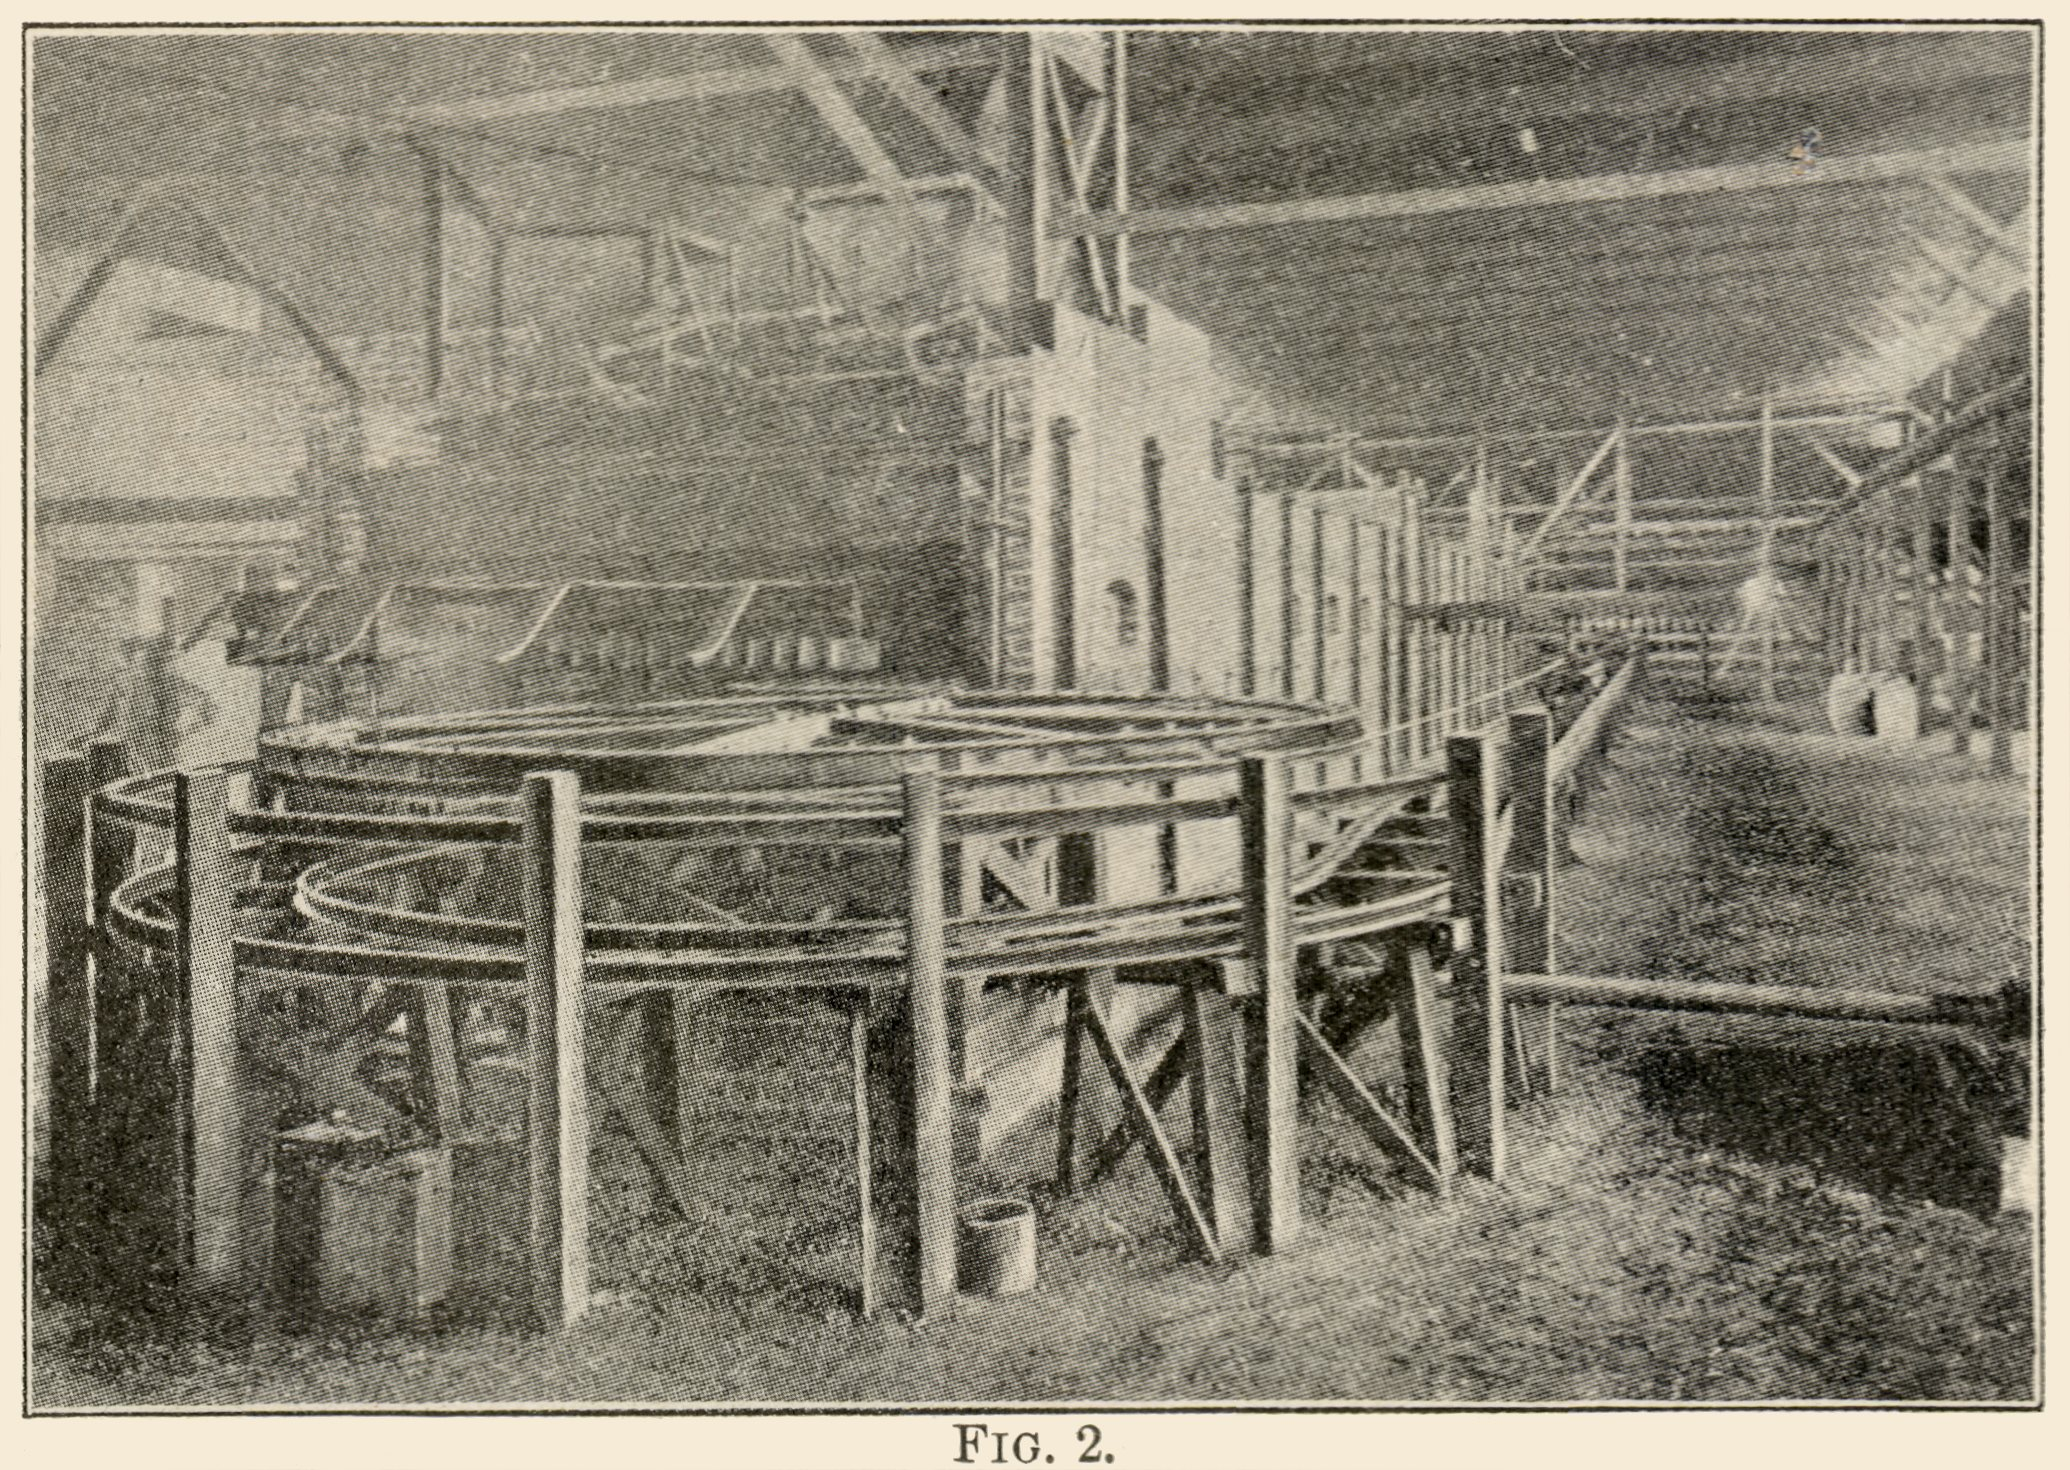 Interior View at the Arequa Mill and Its Cyanide Plant.